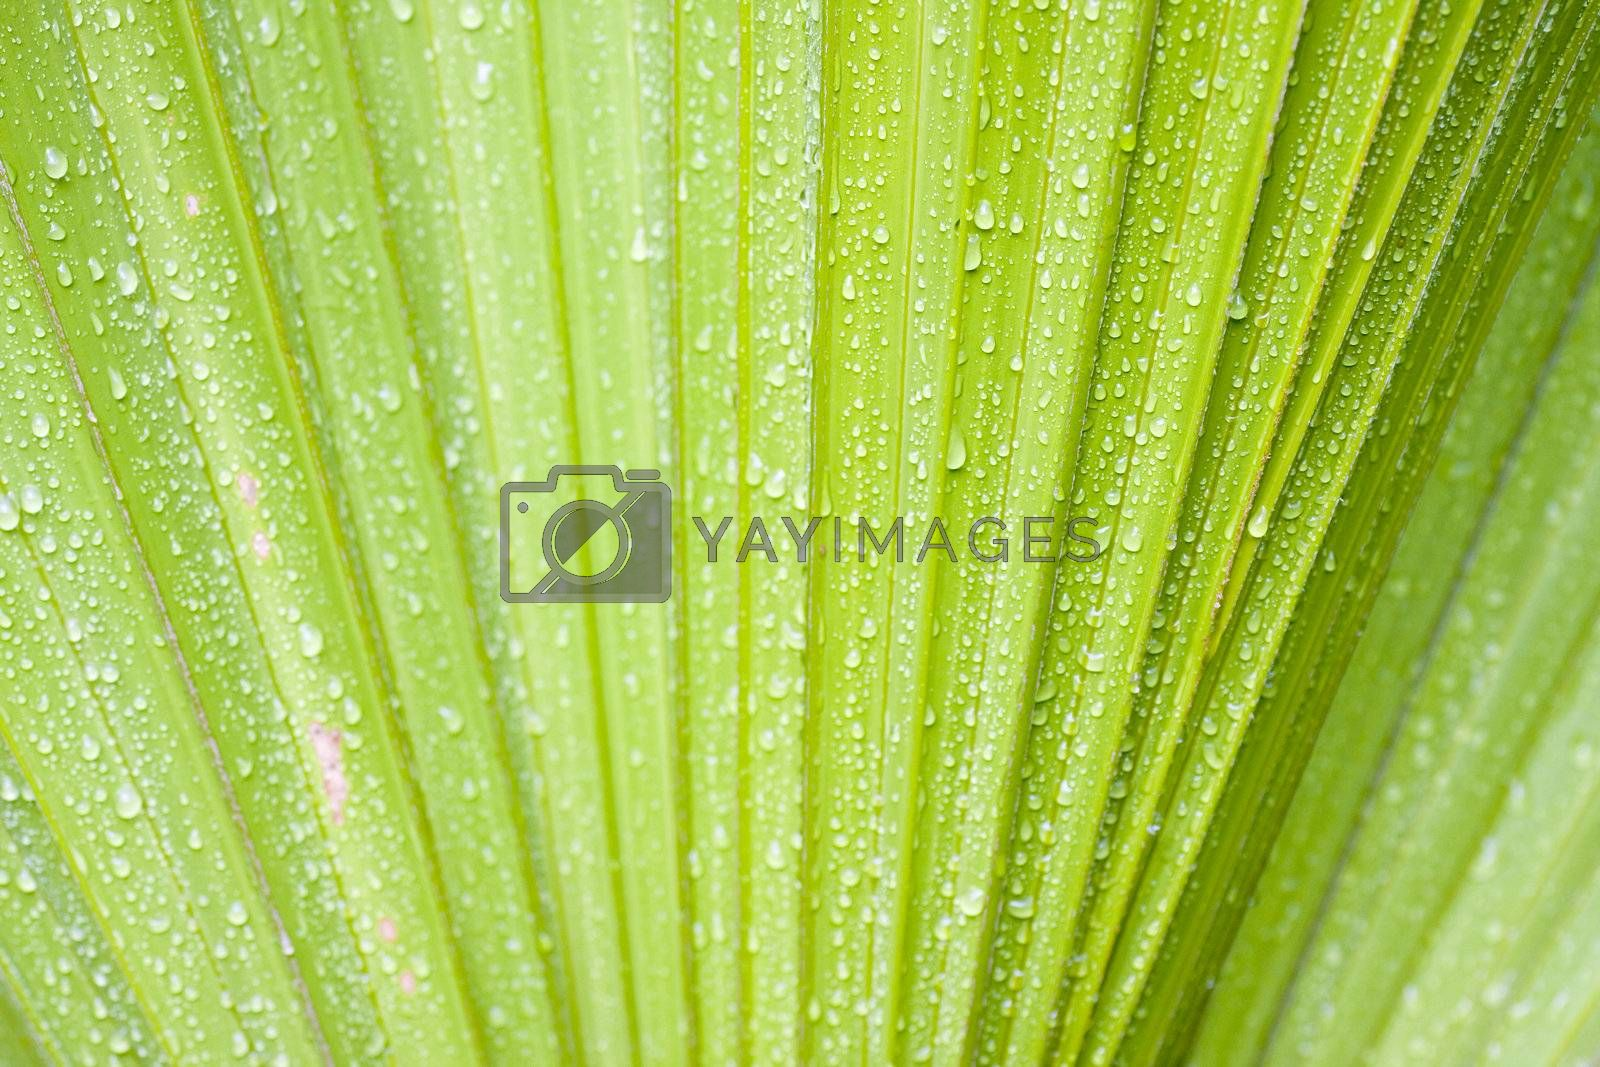 Waterdrops on the leaf of a tropical palm tree. Brazil.